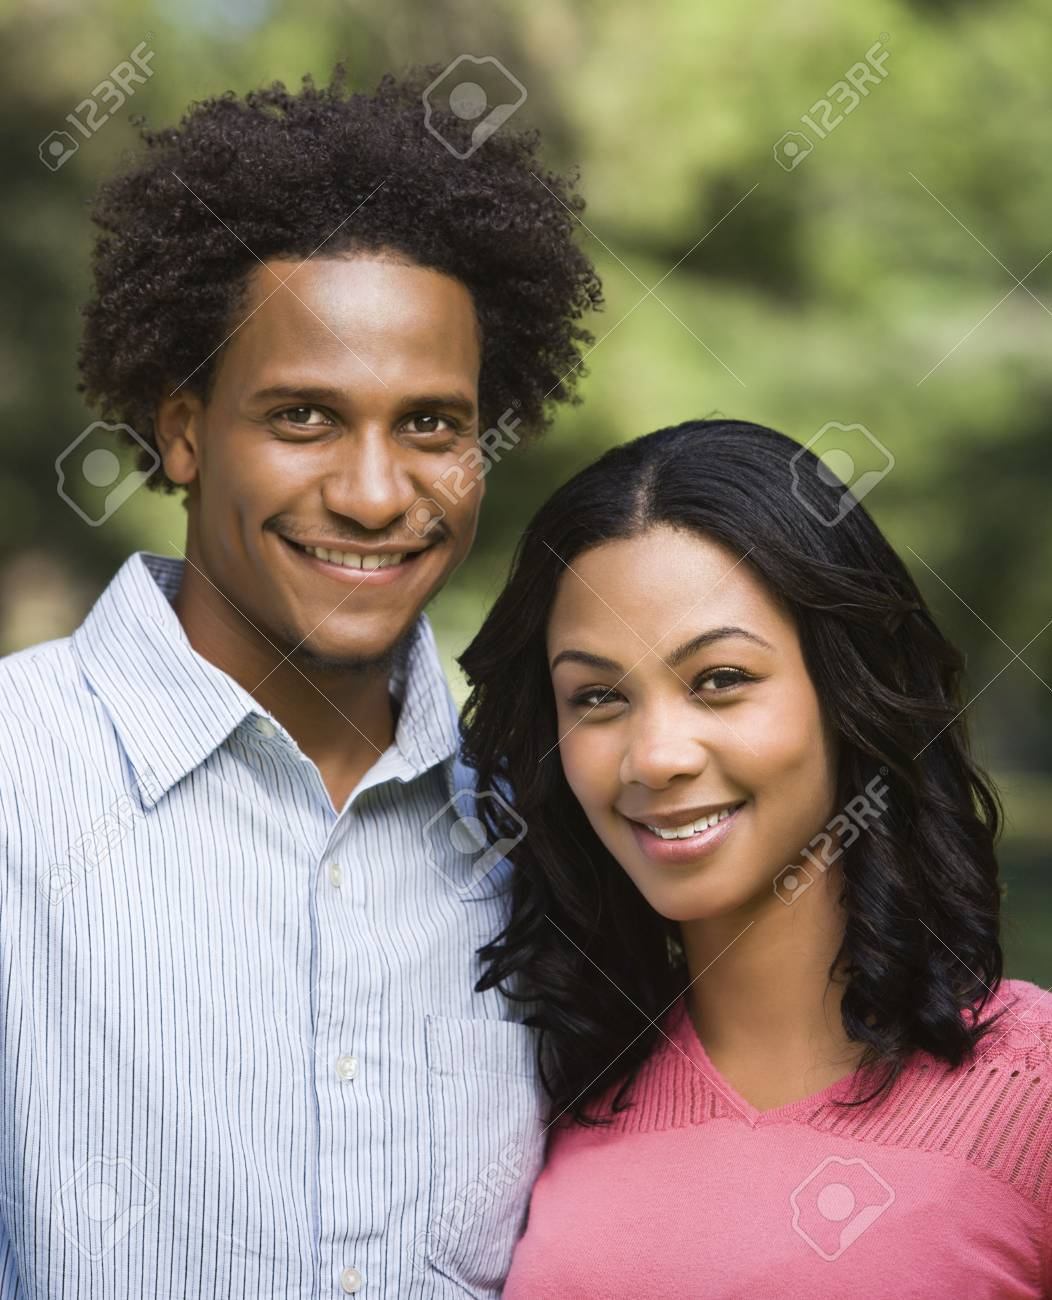 Head and shoulder portrait of smiling couple in park. Stock Photo - 2115348